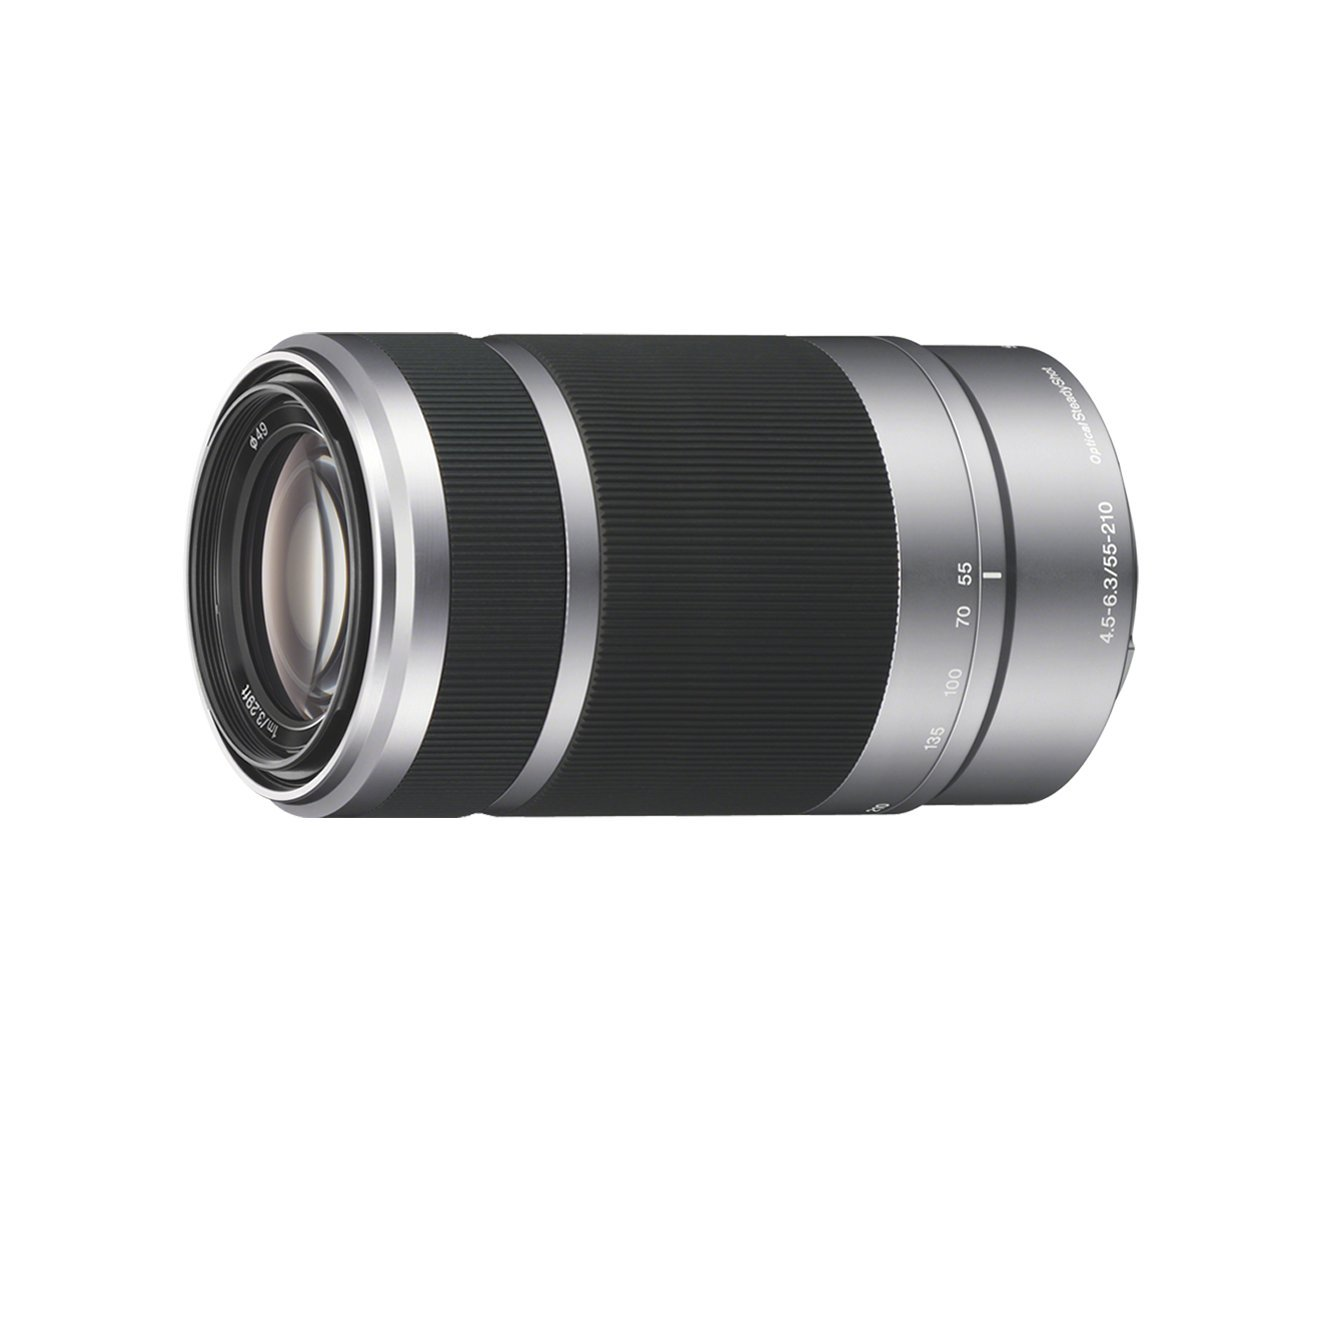 Sony SEL55210 E Mount APS-C 55-210 mm F4.5-6.3 Telephoto